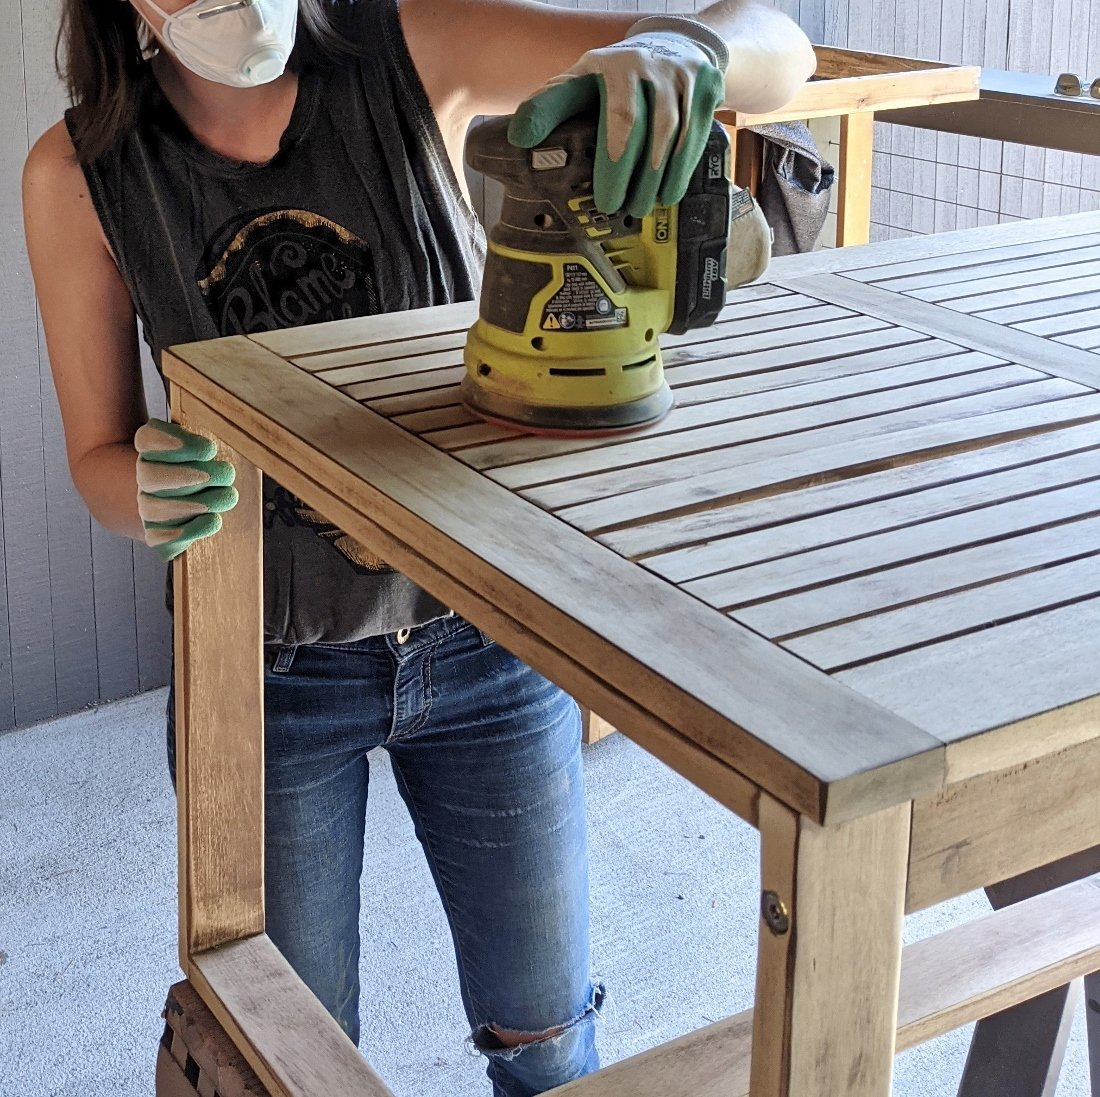 Sanding wood outdoor coffee table to prep for teak oil application